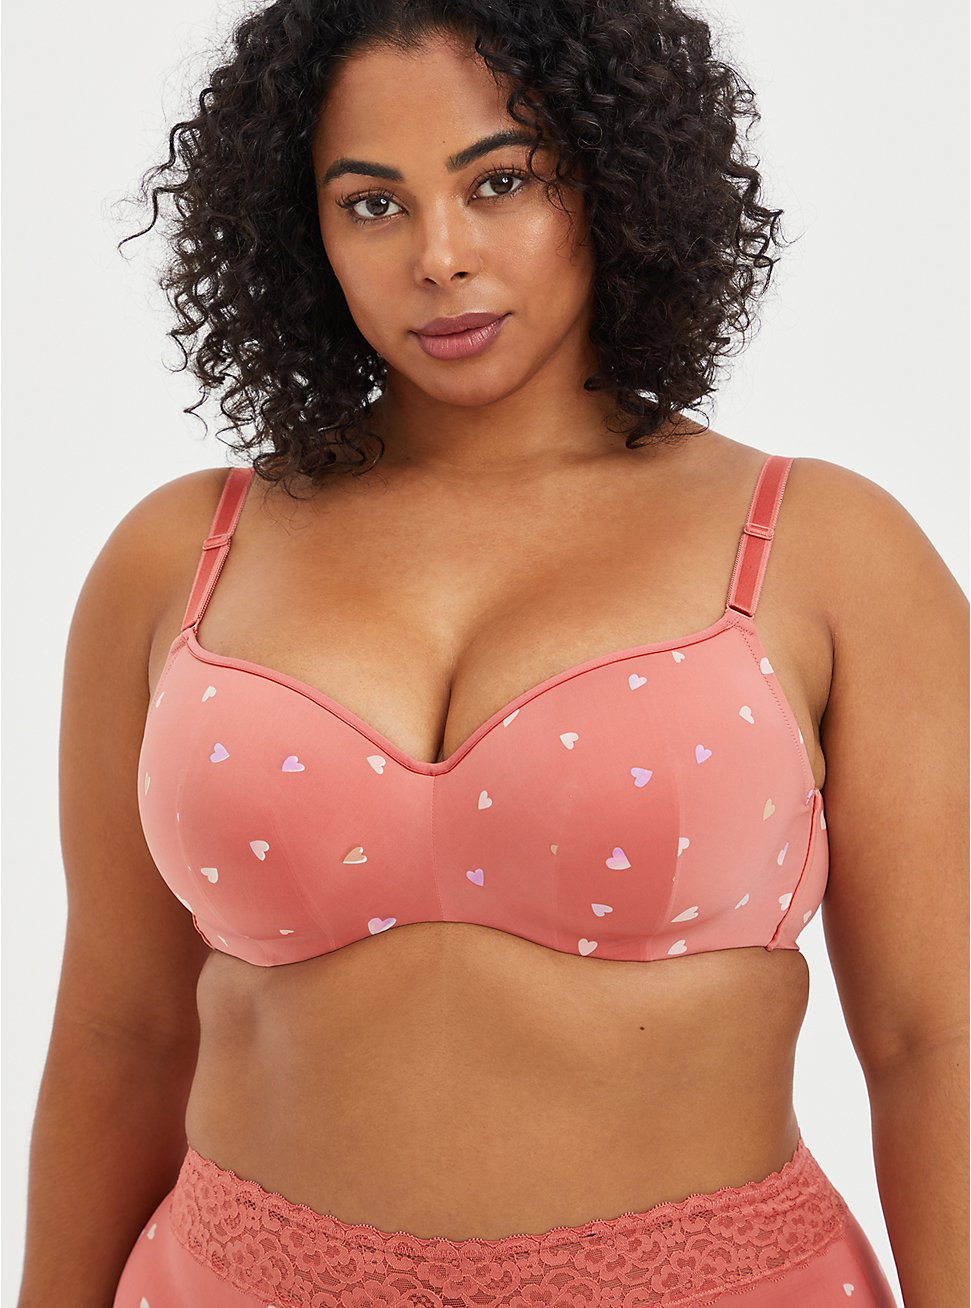 Full Coverage Balconette Bra - Rose Hearts with 360° Back Smoothing™ , HEARTS OF GOLD RED, hi-res